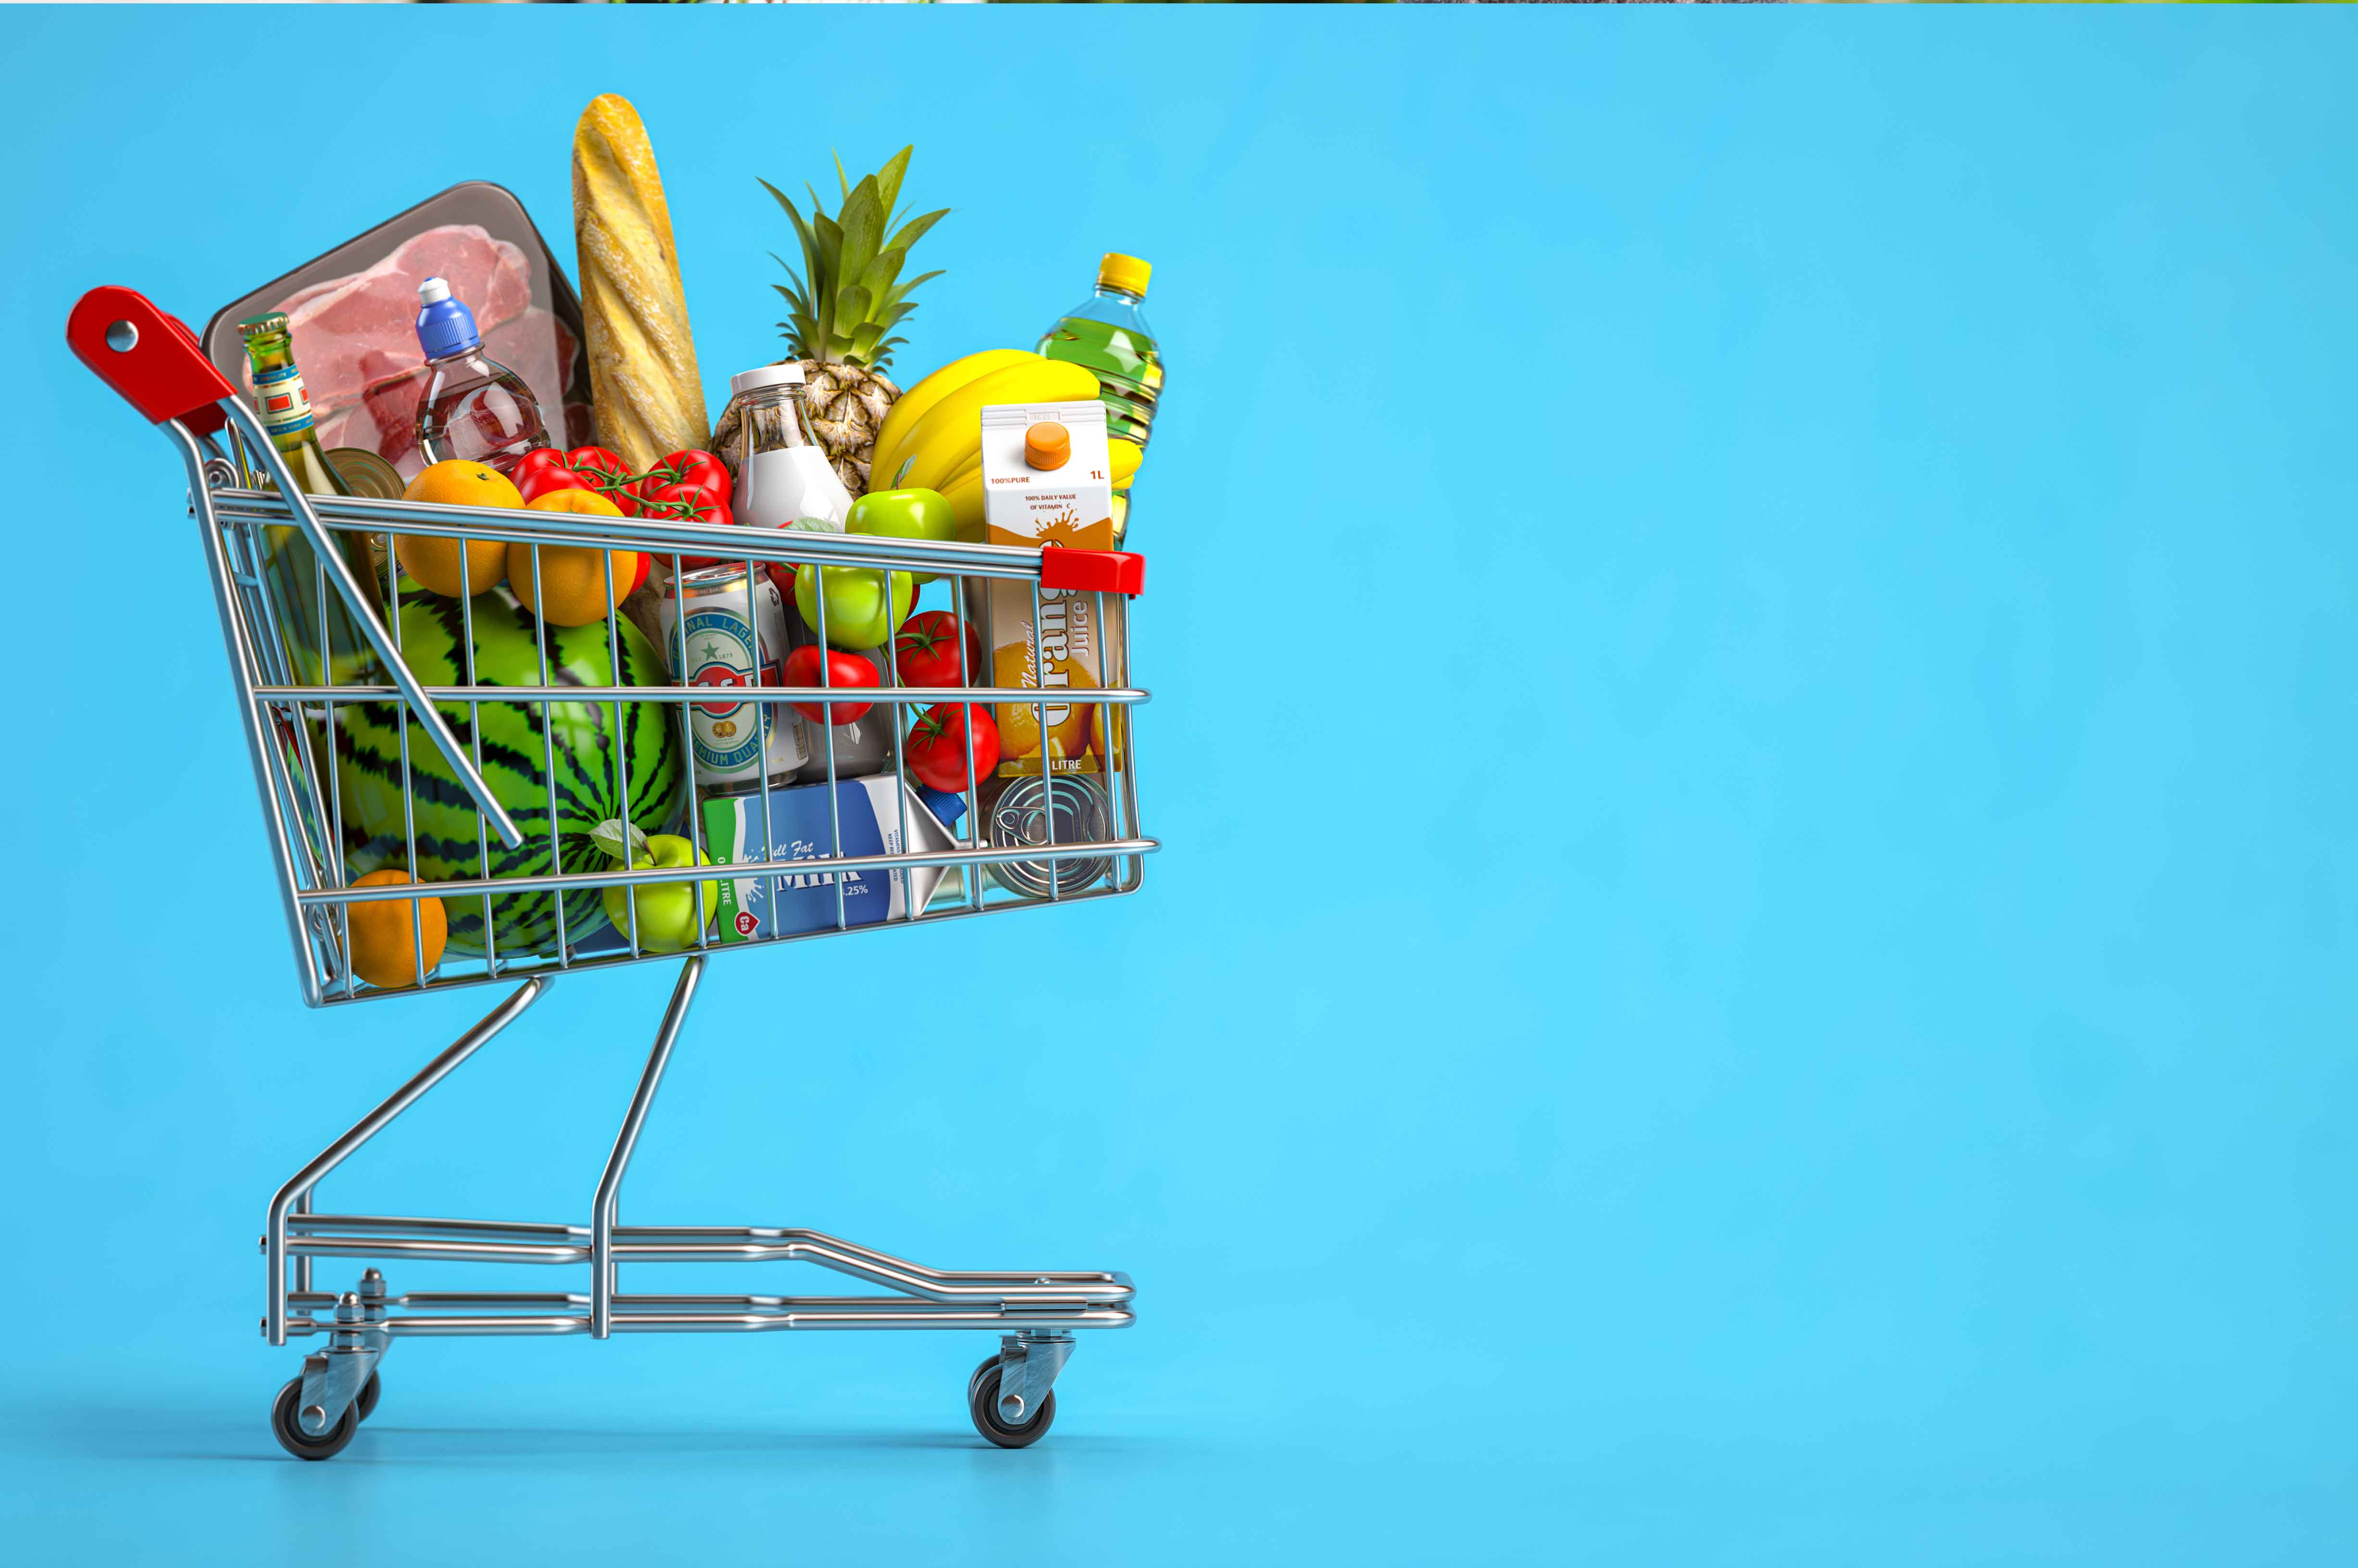 Meal Kits: Second-mover advantages to regional grocery chains